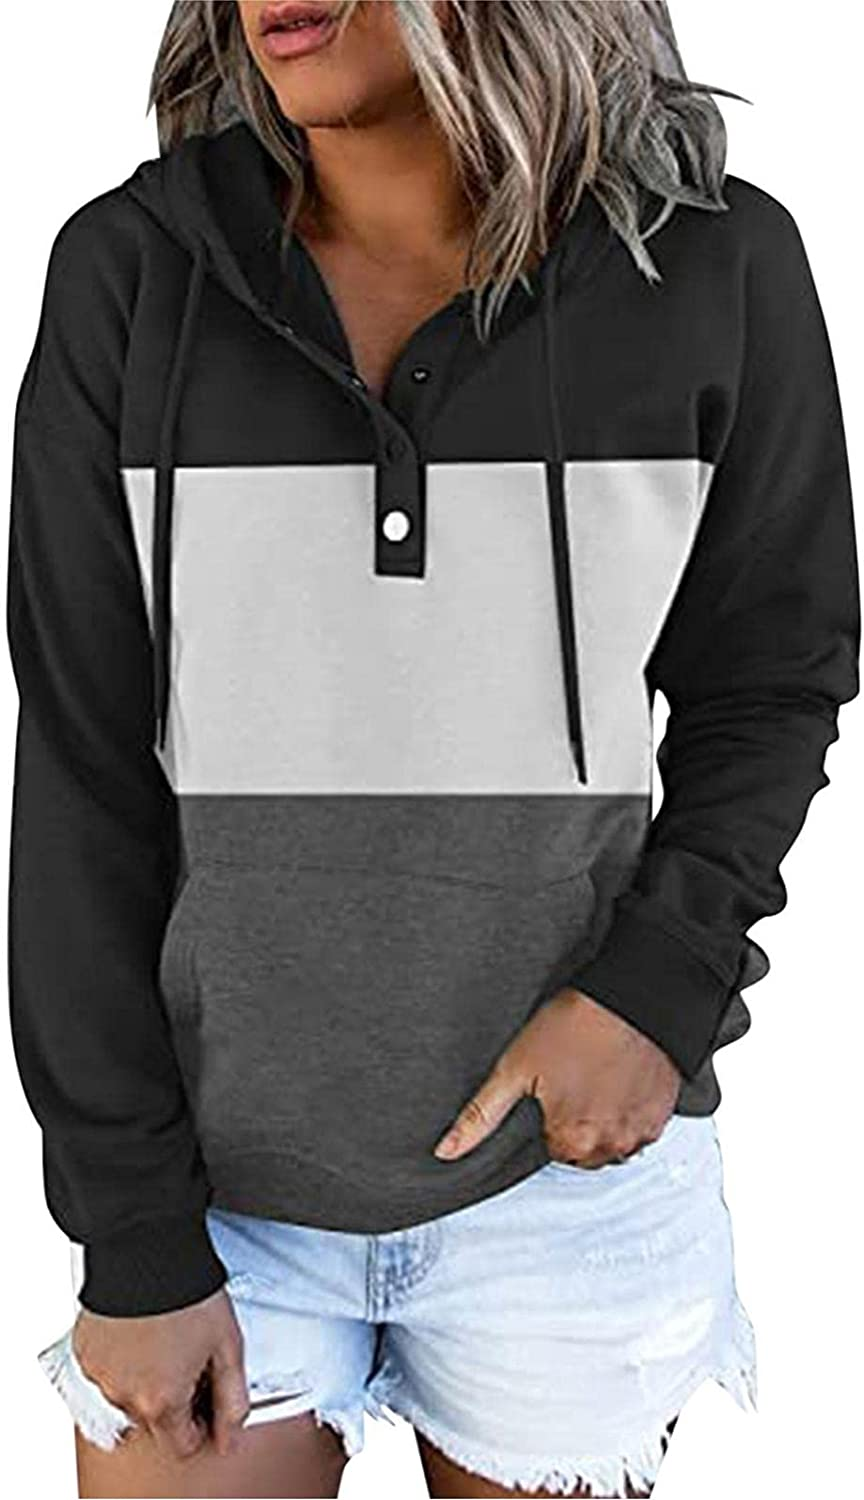 COMVALUE Womens Hoodies,Drawstring Pullover Color Block Long Sleeve Button Down Casual Sweatshirts with Pocket